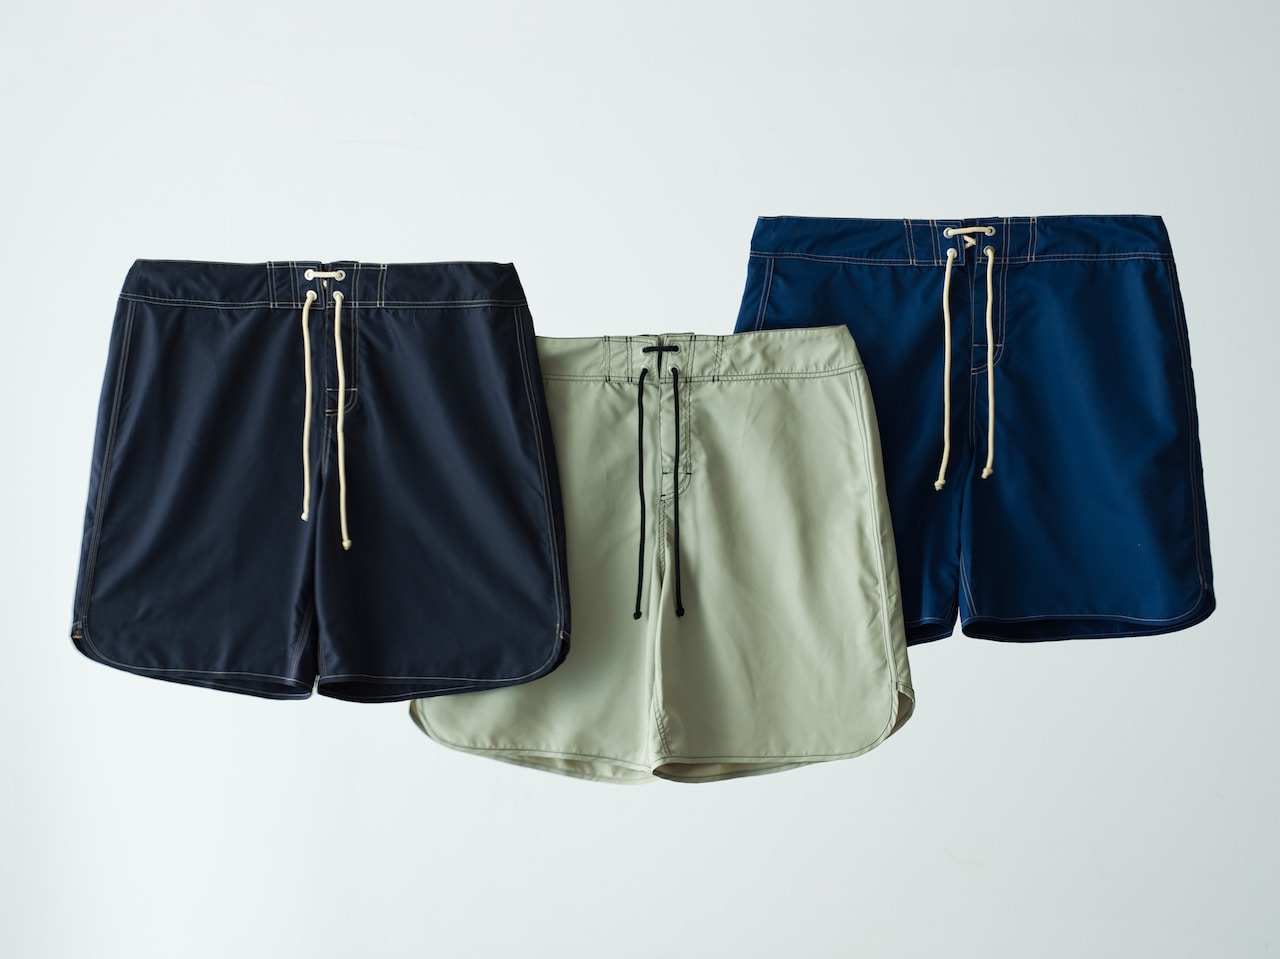 JIL SANDER Exclusive Beachwear for Ron Herman 4.10(Sat) New Arrival